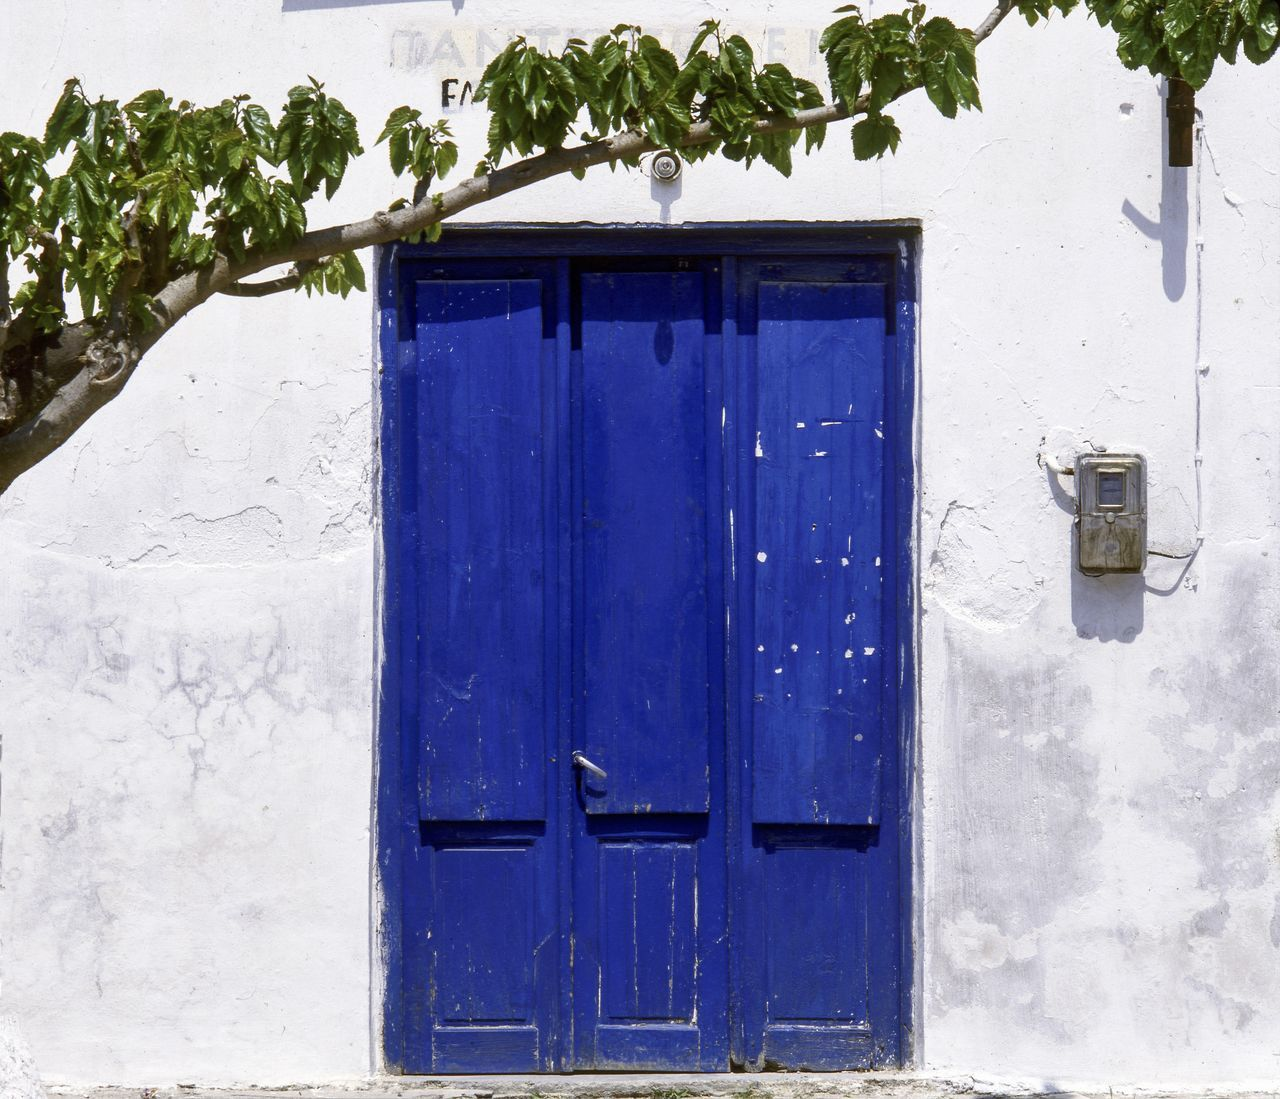 Facade, Old House, Crete, Greece Architecture Blue Blue Door Blue Doors Building Exterior Built Structure Closed Crete Greece Day Door Doorway Entrance Entrance Galatas Village Greece, Crete Greek Style Home Exterior House Facade Mediterranean  No People Outdoors The Past Traditional Travel Photography Whitewashed Walls